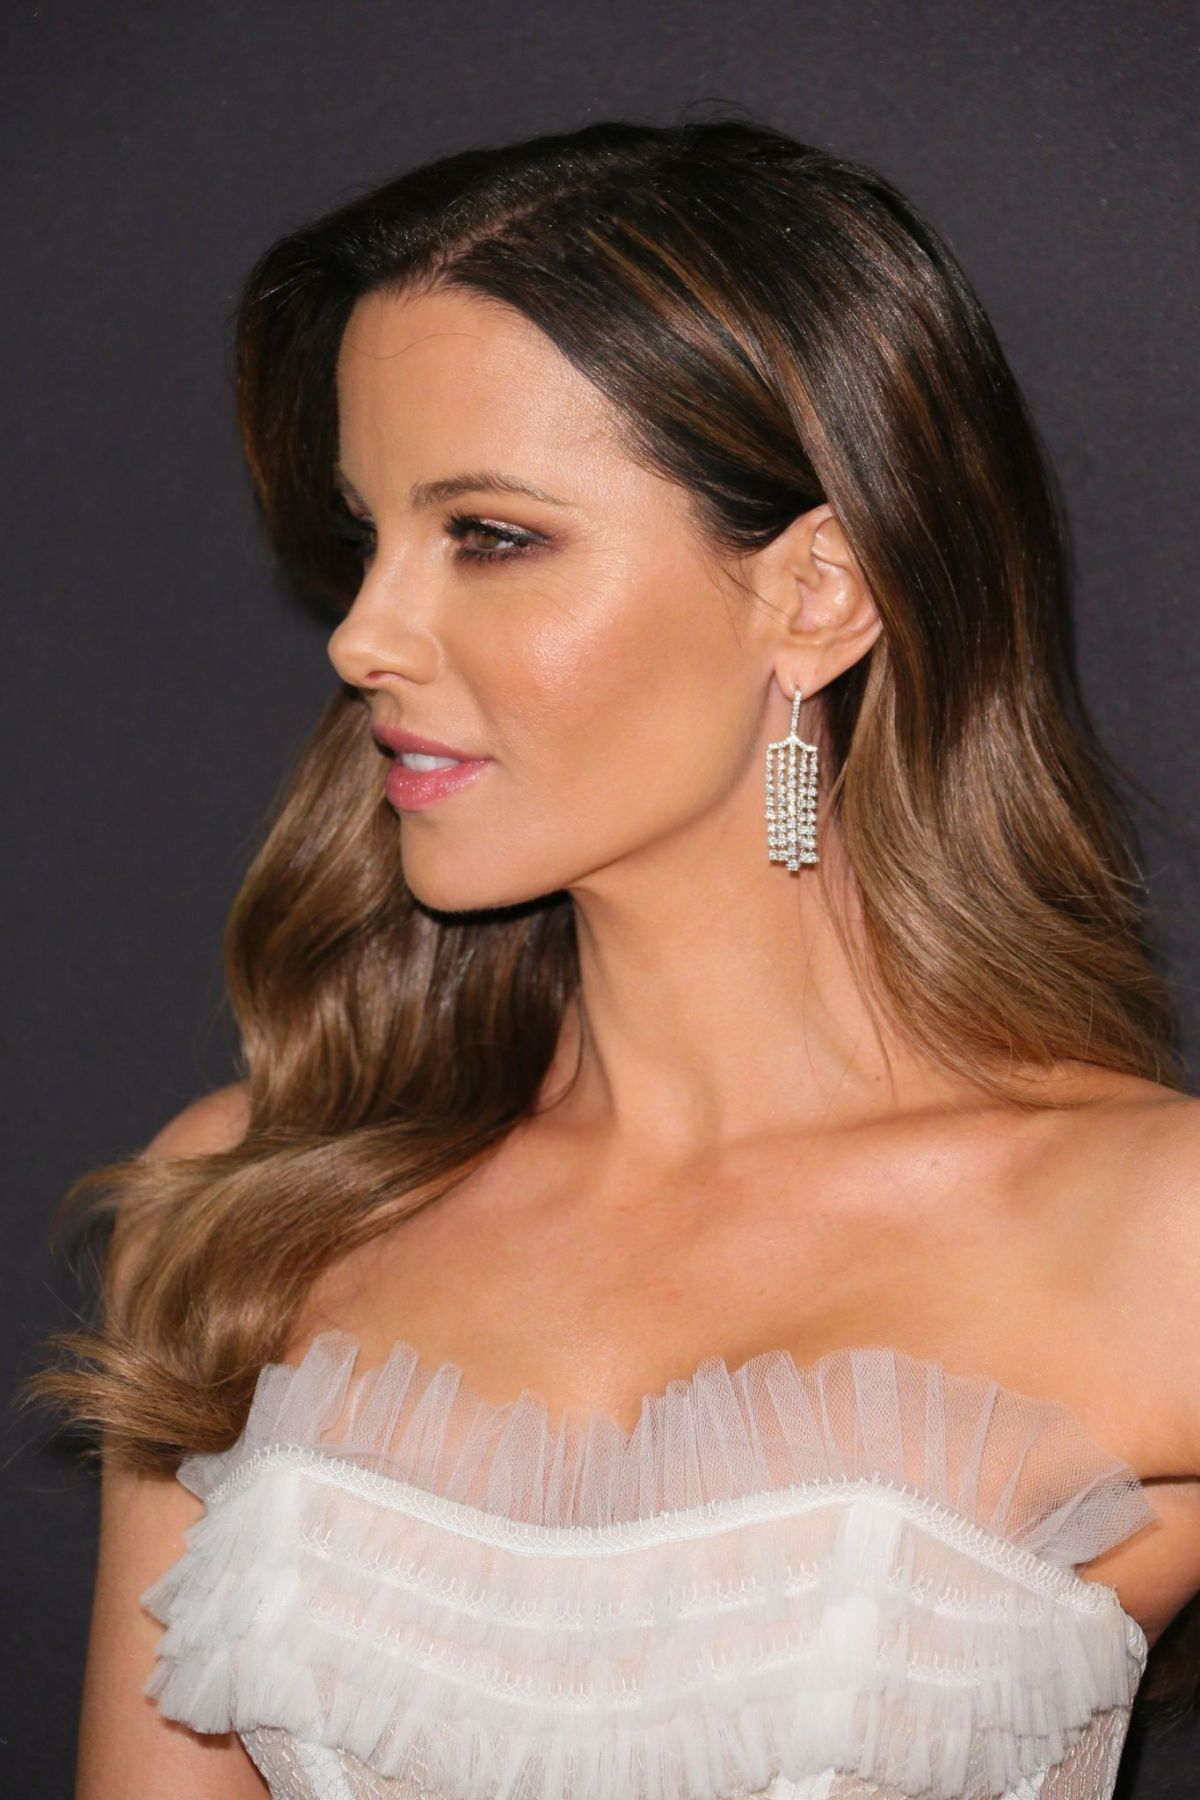 kate-beckinsale-at-instyle-and-warner-bros-golden-globe-awards-afterparty-in-beverly-hills-01-06-2019-1.jpg